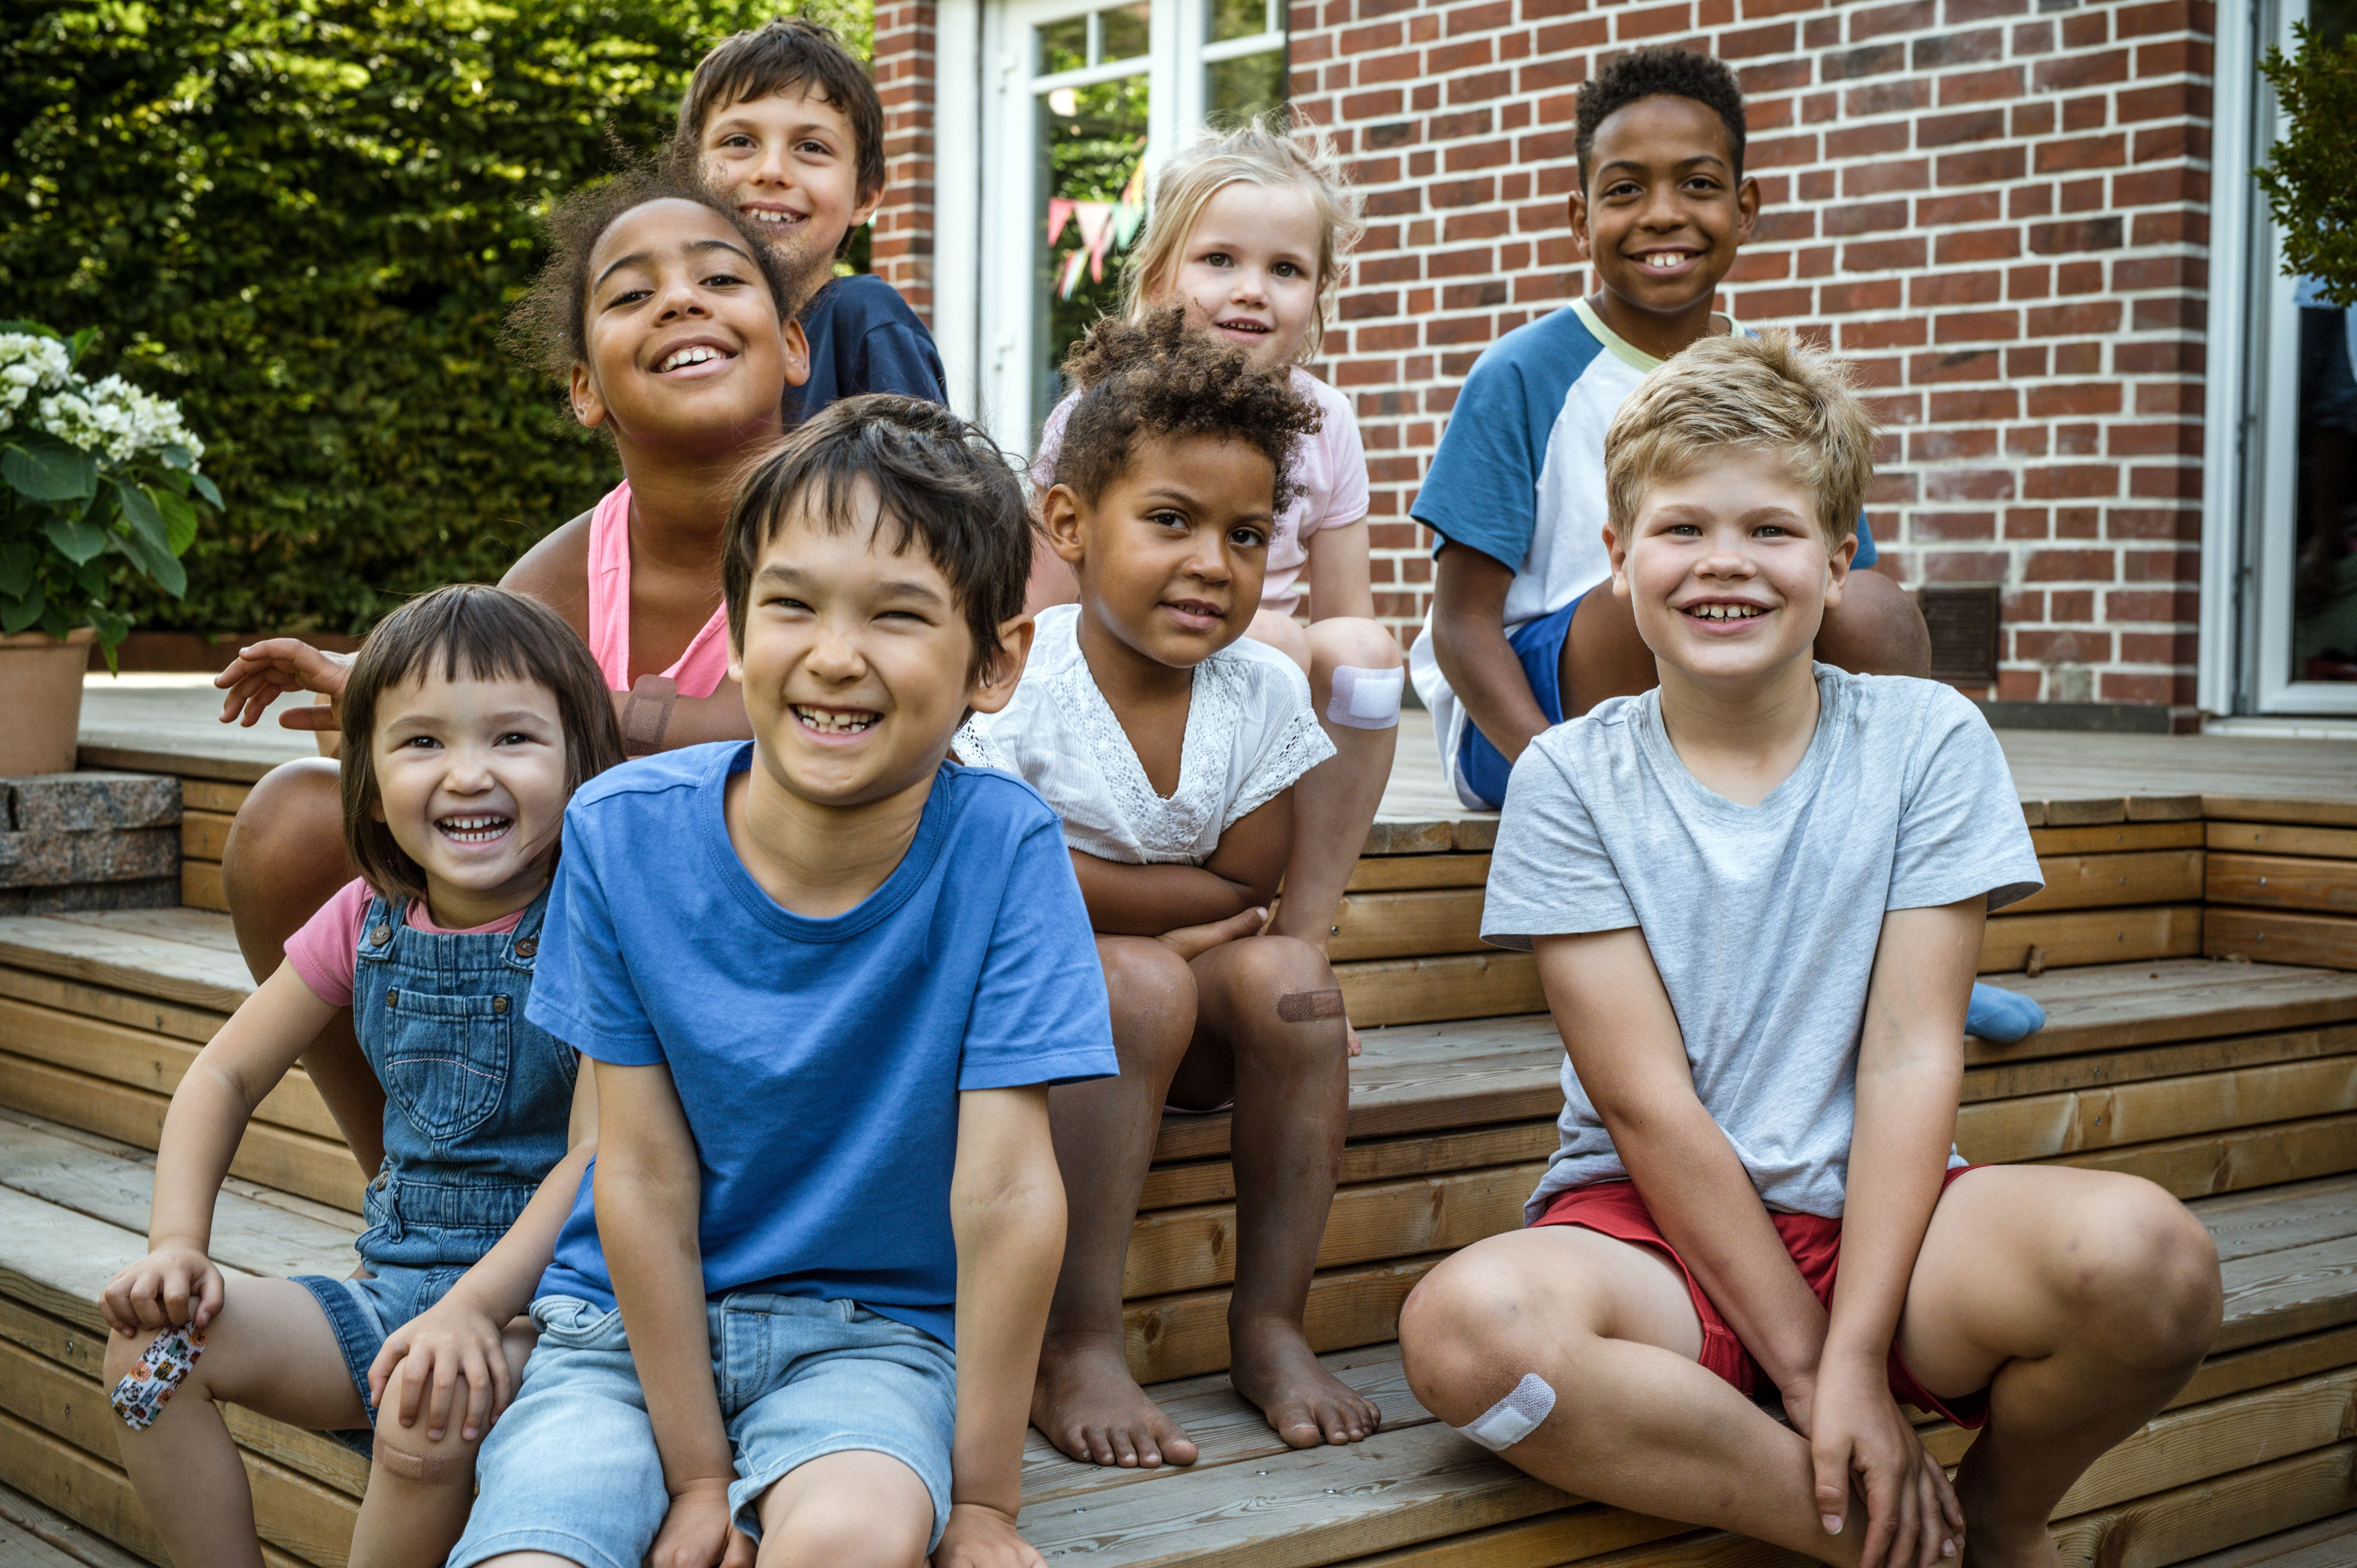 Eight smiling children sitting on some wooden steps.